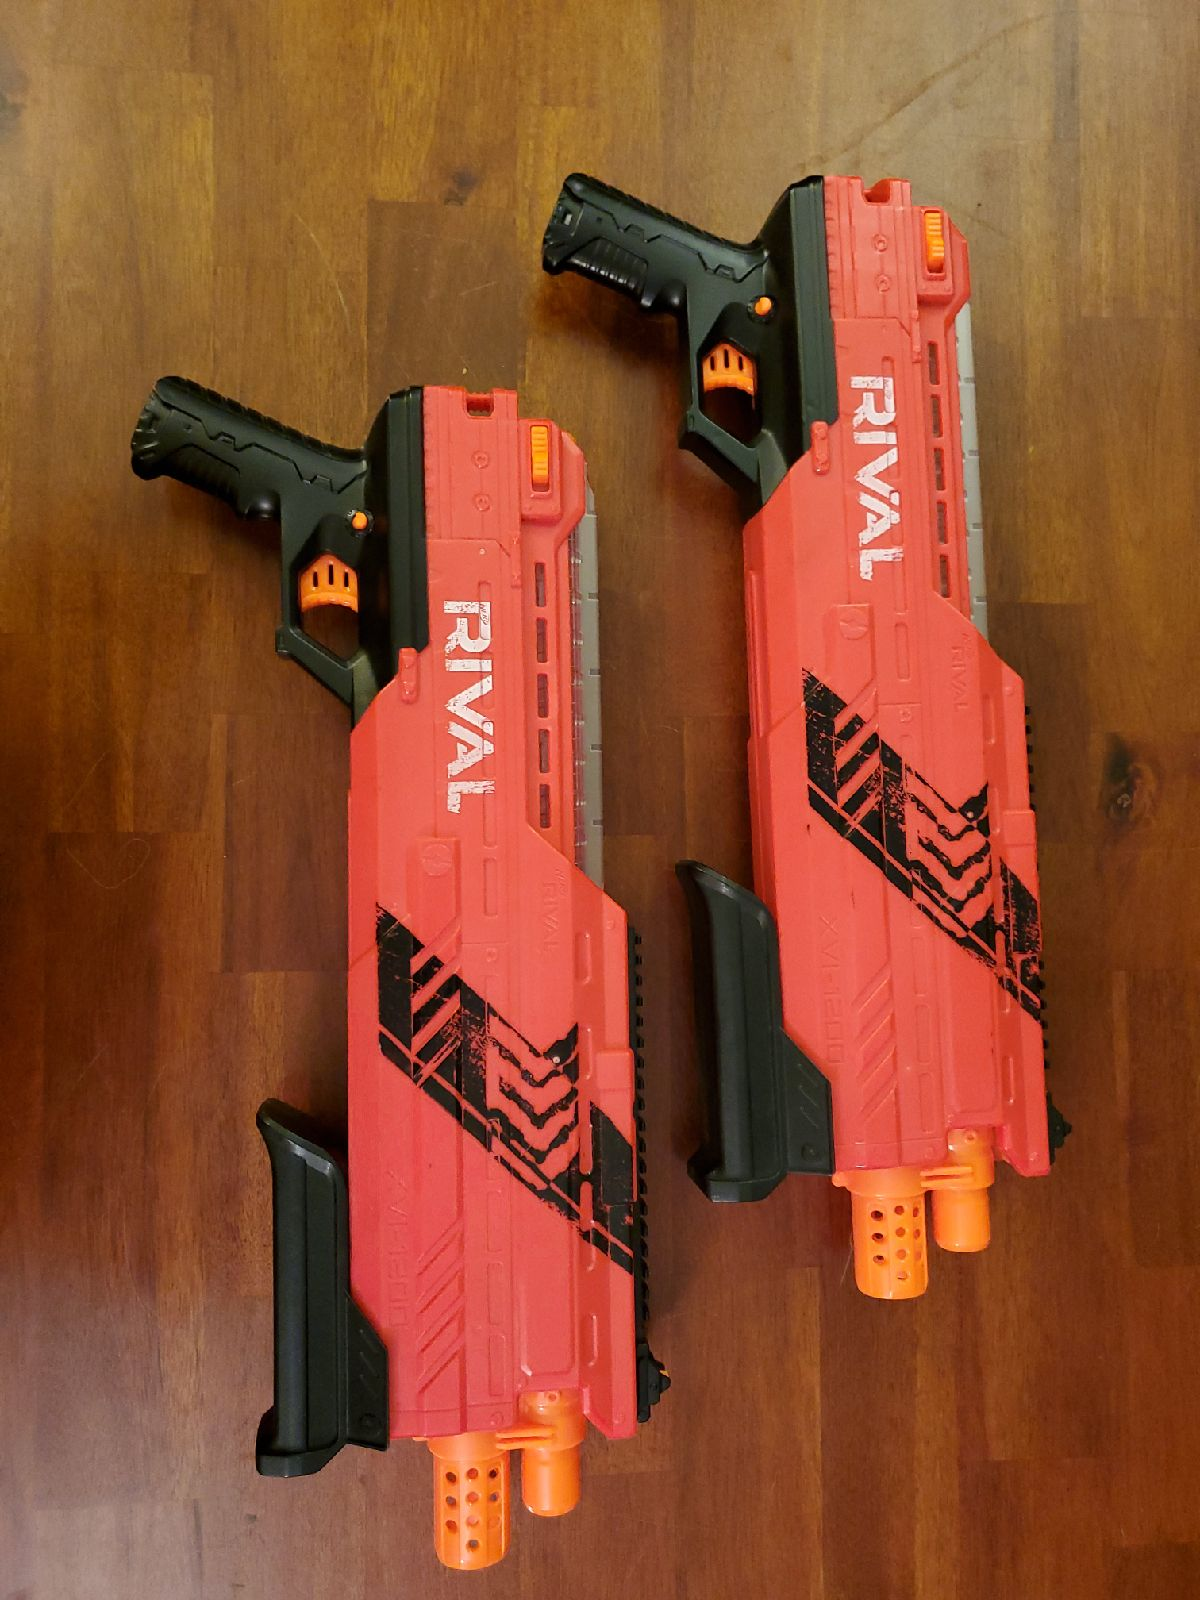 Pair of Nerf Rival red XVI-1200 blasters